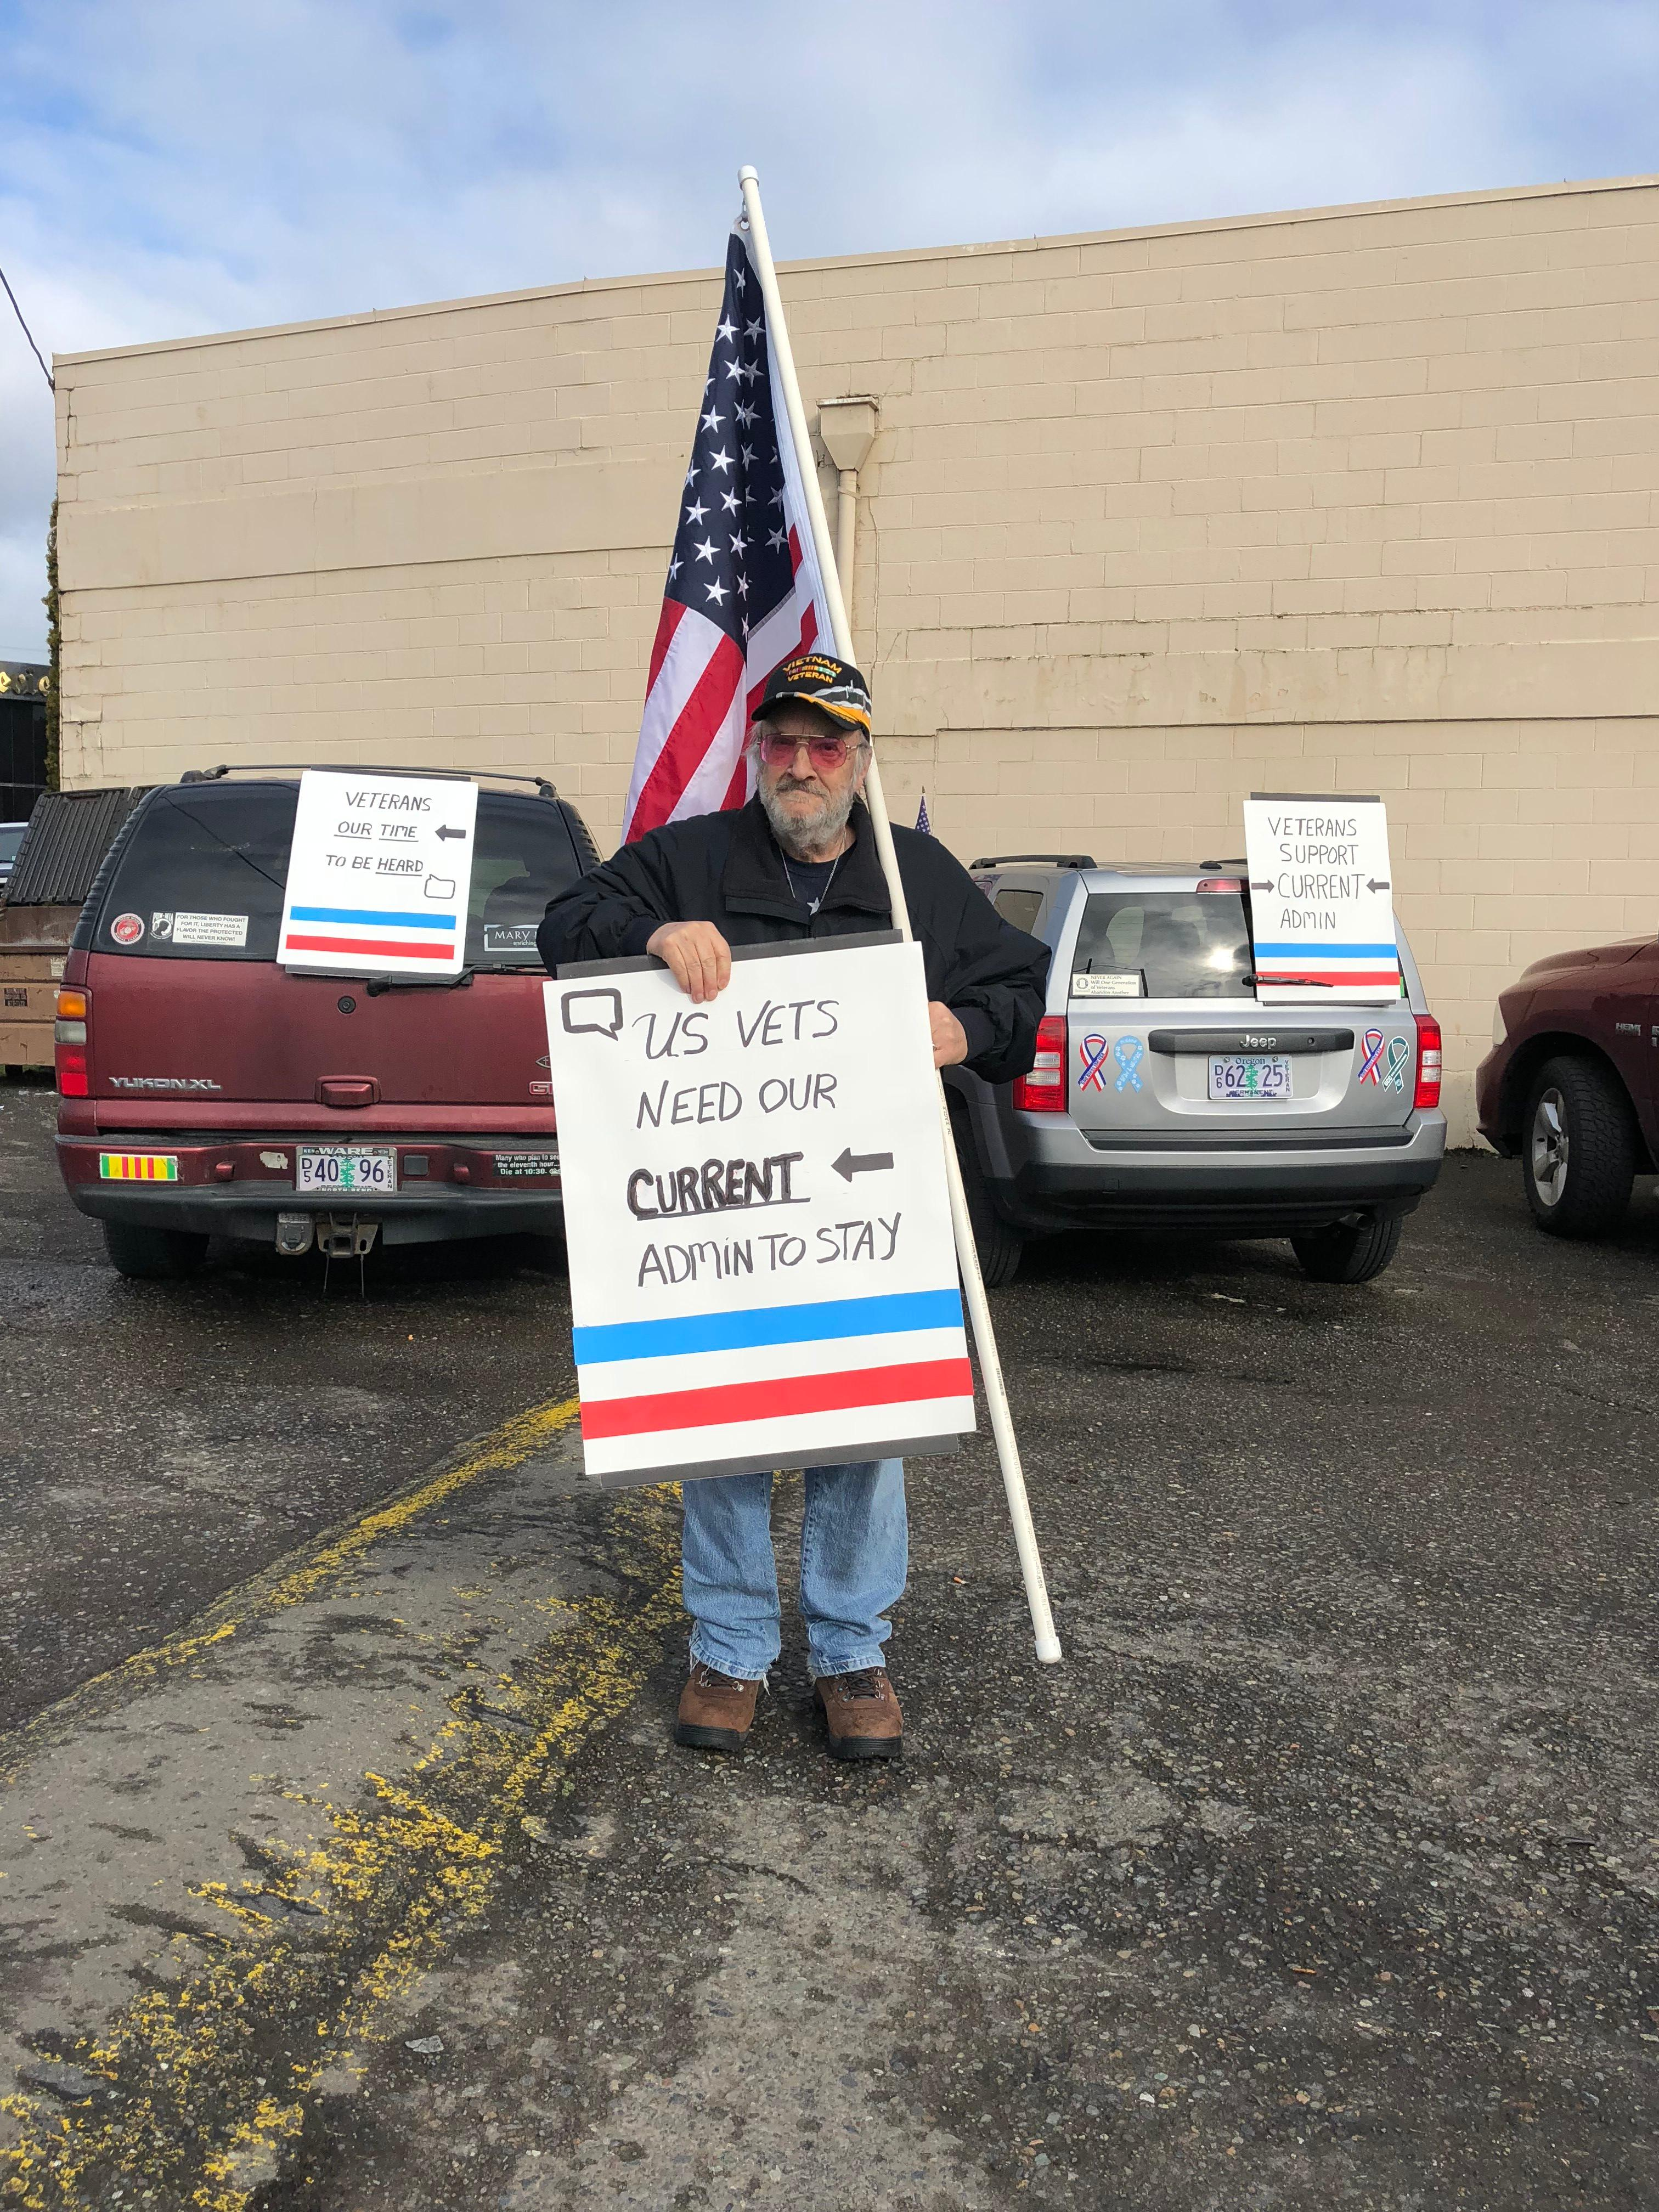 The Vietnam Veterans of America, Umpqua Valley Chapter 805 wants to make their voices heard, and with signs in hand, they're showing their support for the Roseburg VA Hospital.